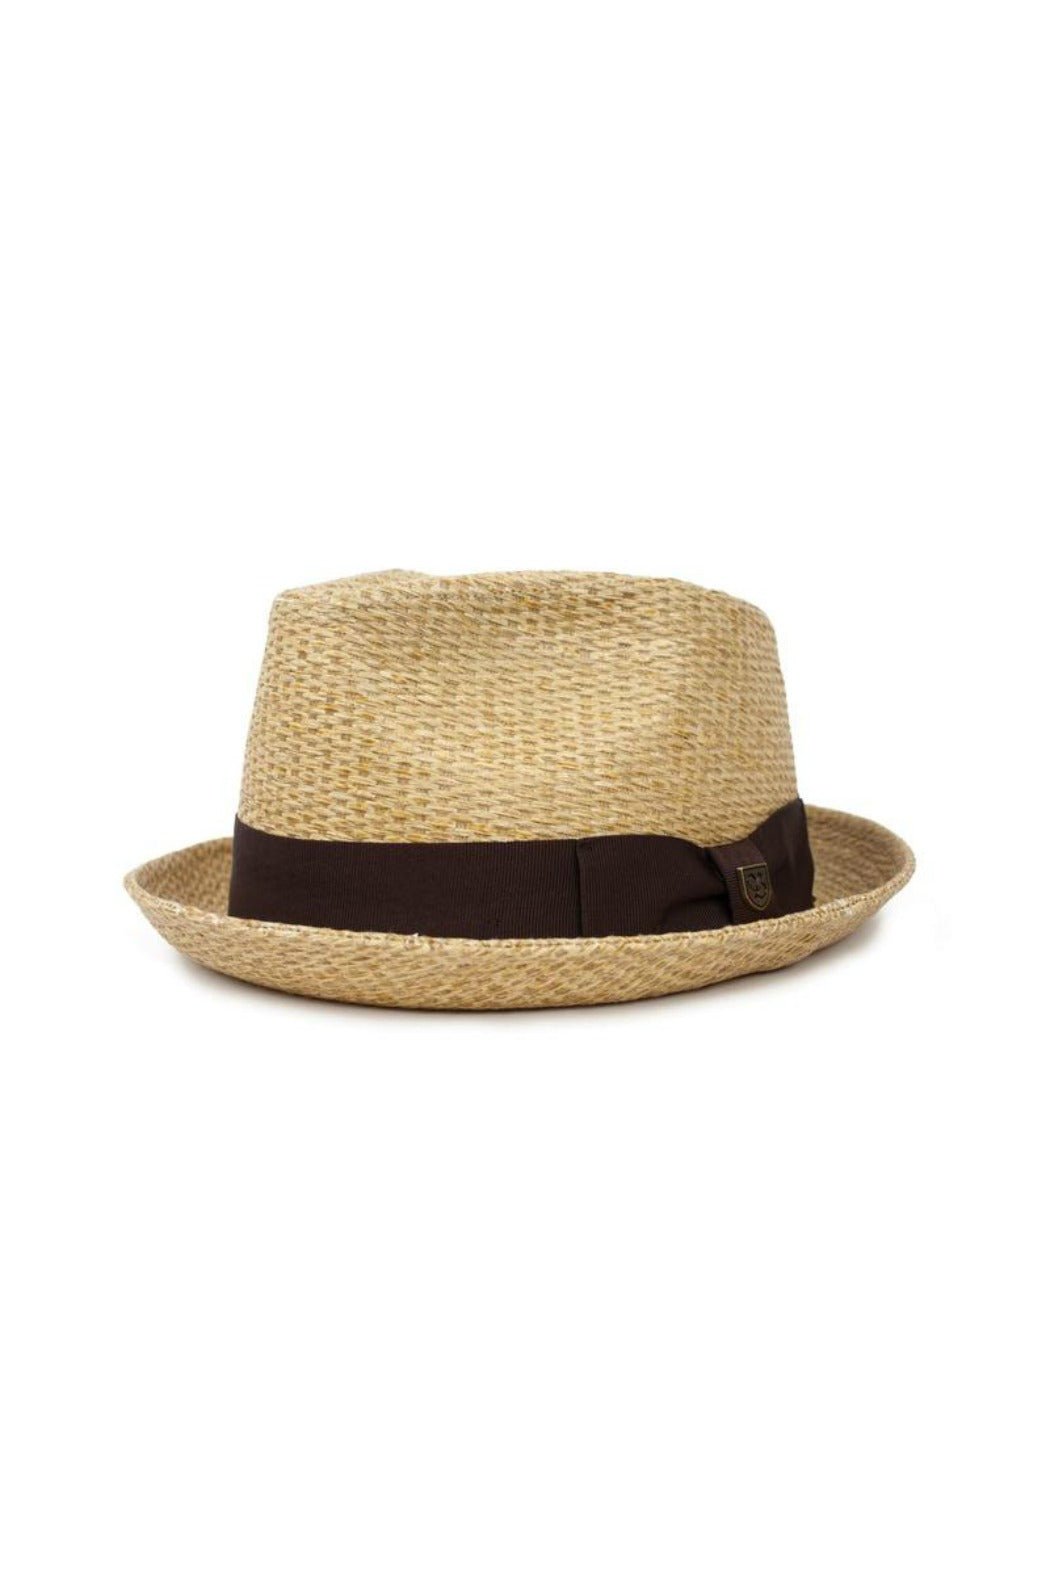 Brixton Castor Fedora in Tan Straw – Queen of Hearts and Modern Love 233ff9097626